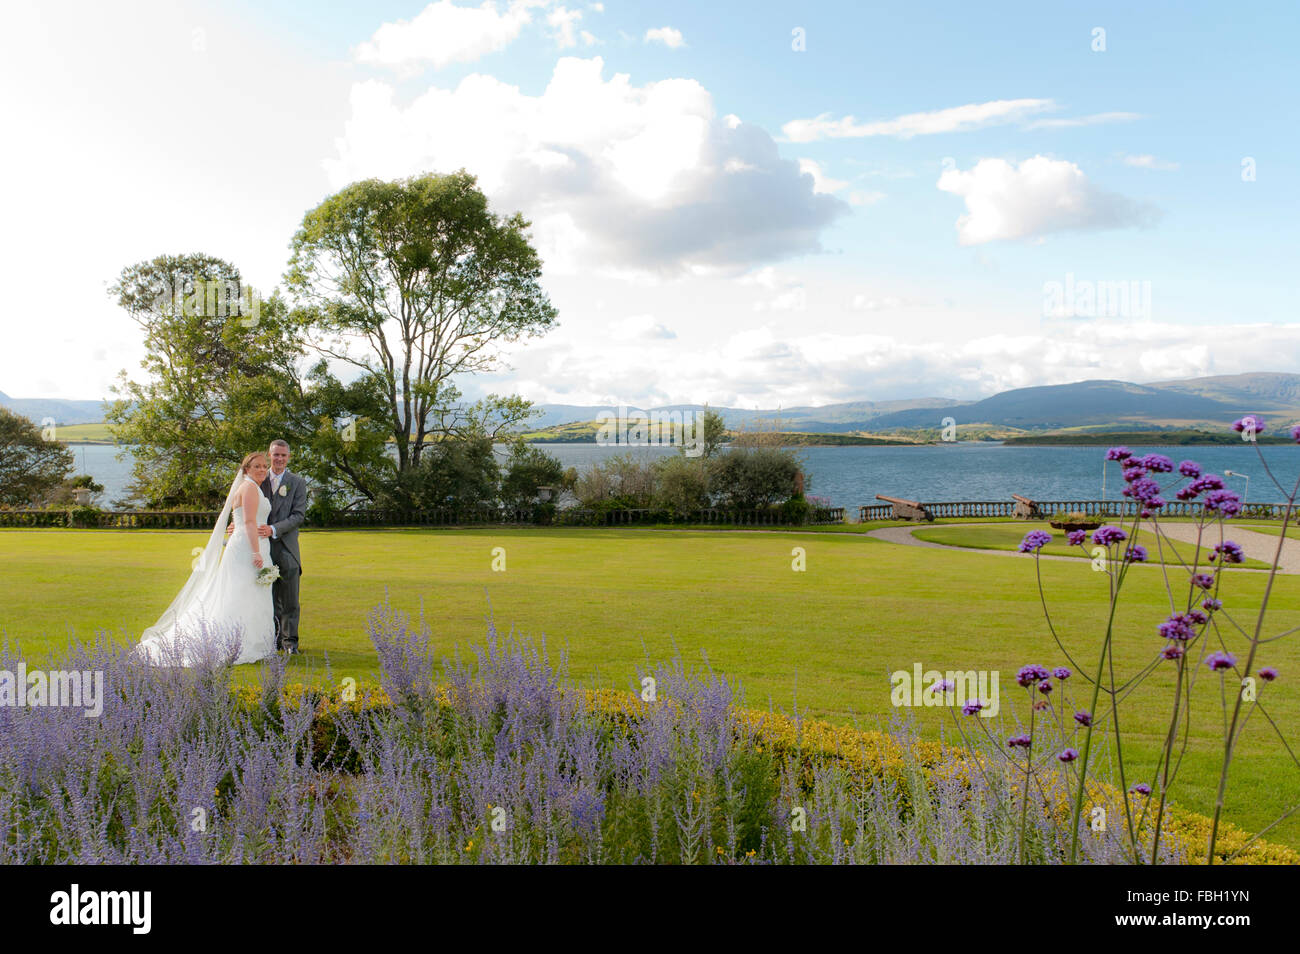 a-bride-and-groom-are-pictured-in-the-grounds-of-bantry-house-and-FBH1YN.jpg